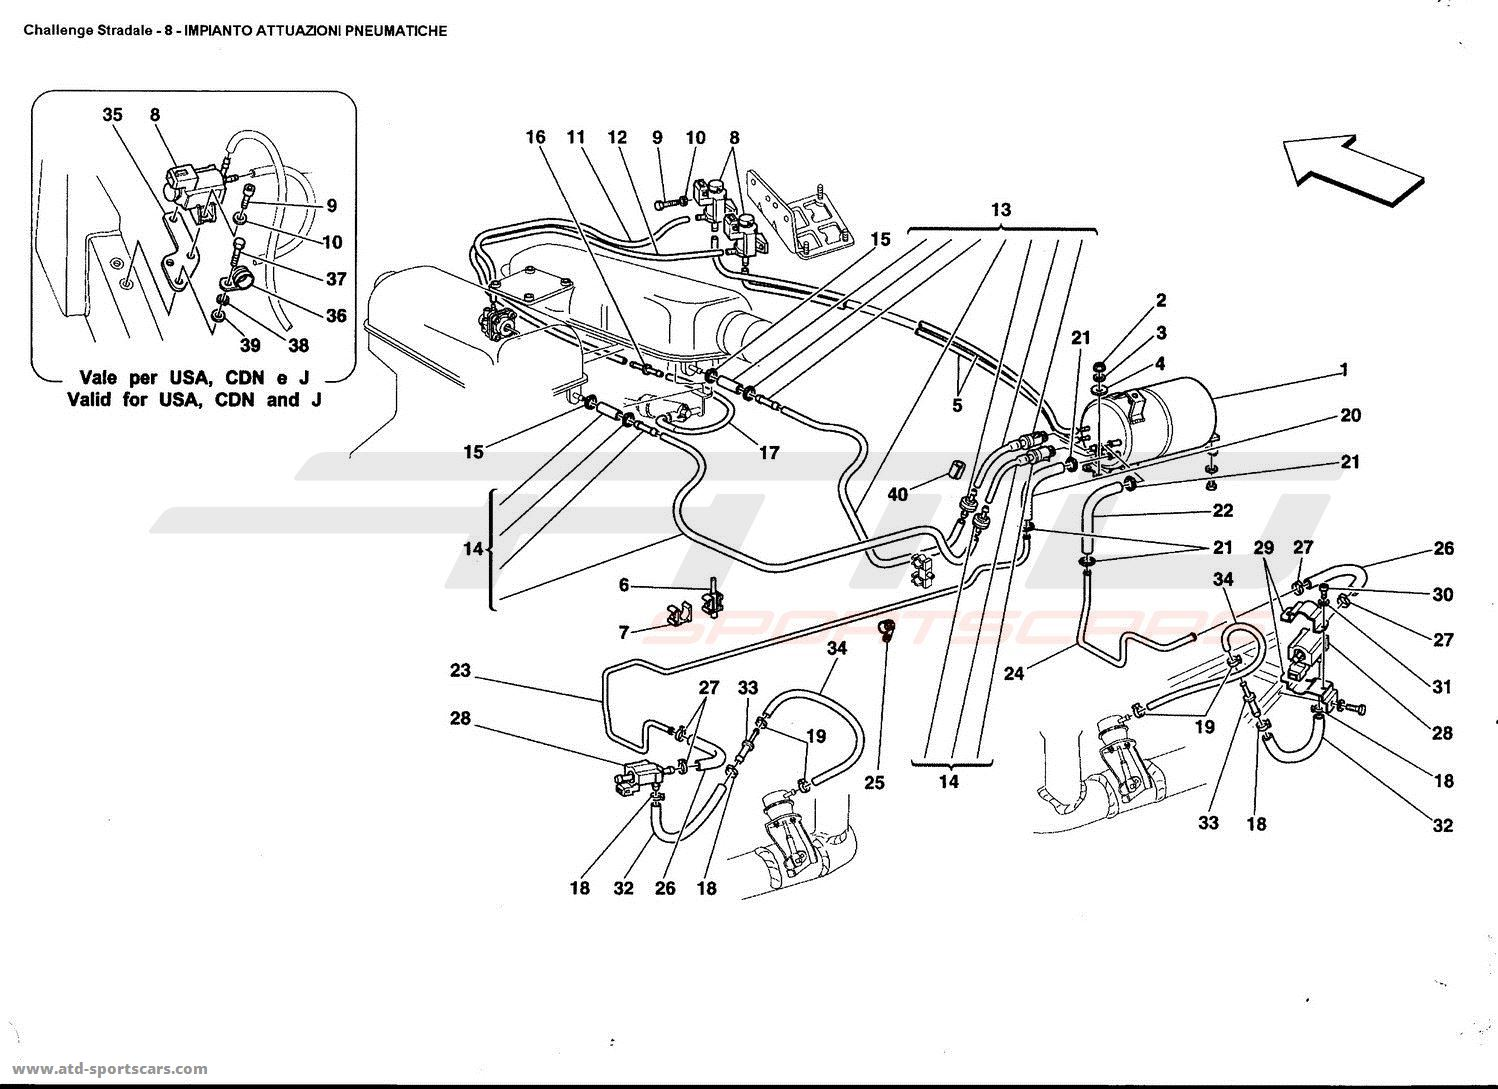 Ferrari 360 Challenge Stradale Air Intake Fuel Parts At Atd Wiring Diagrams Pneumatics Actuator System